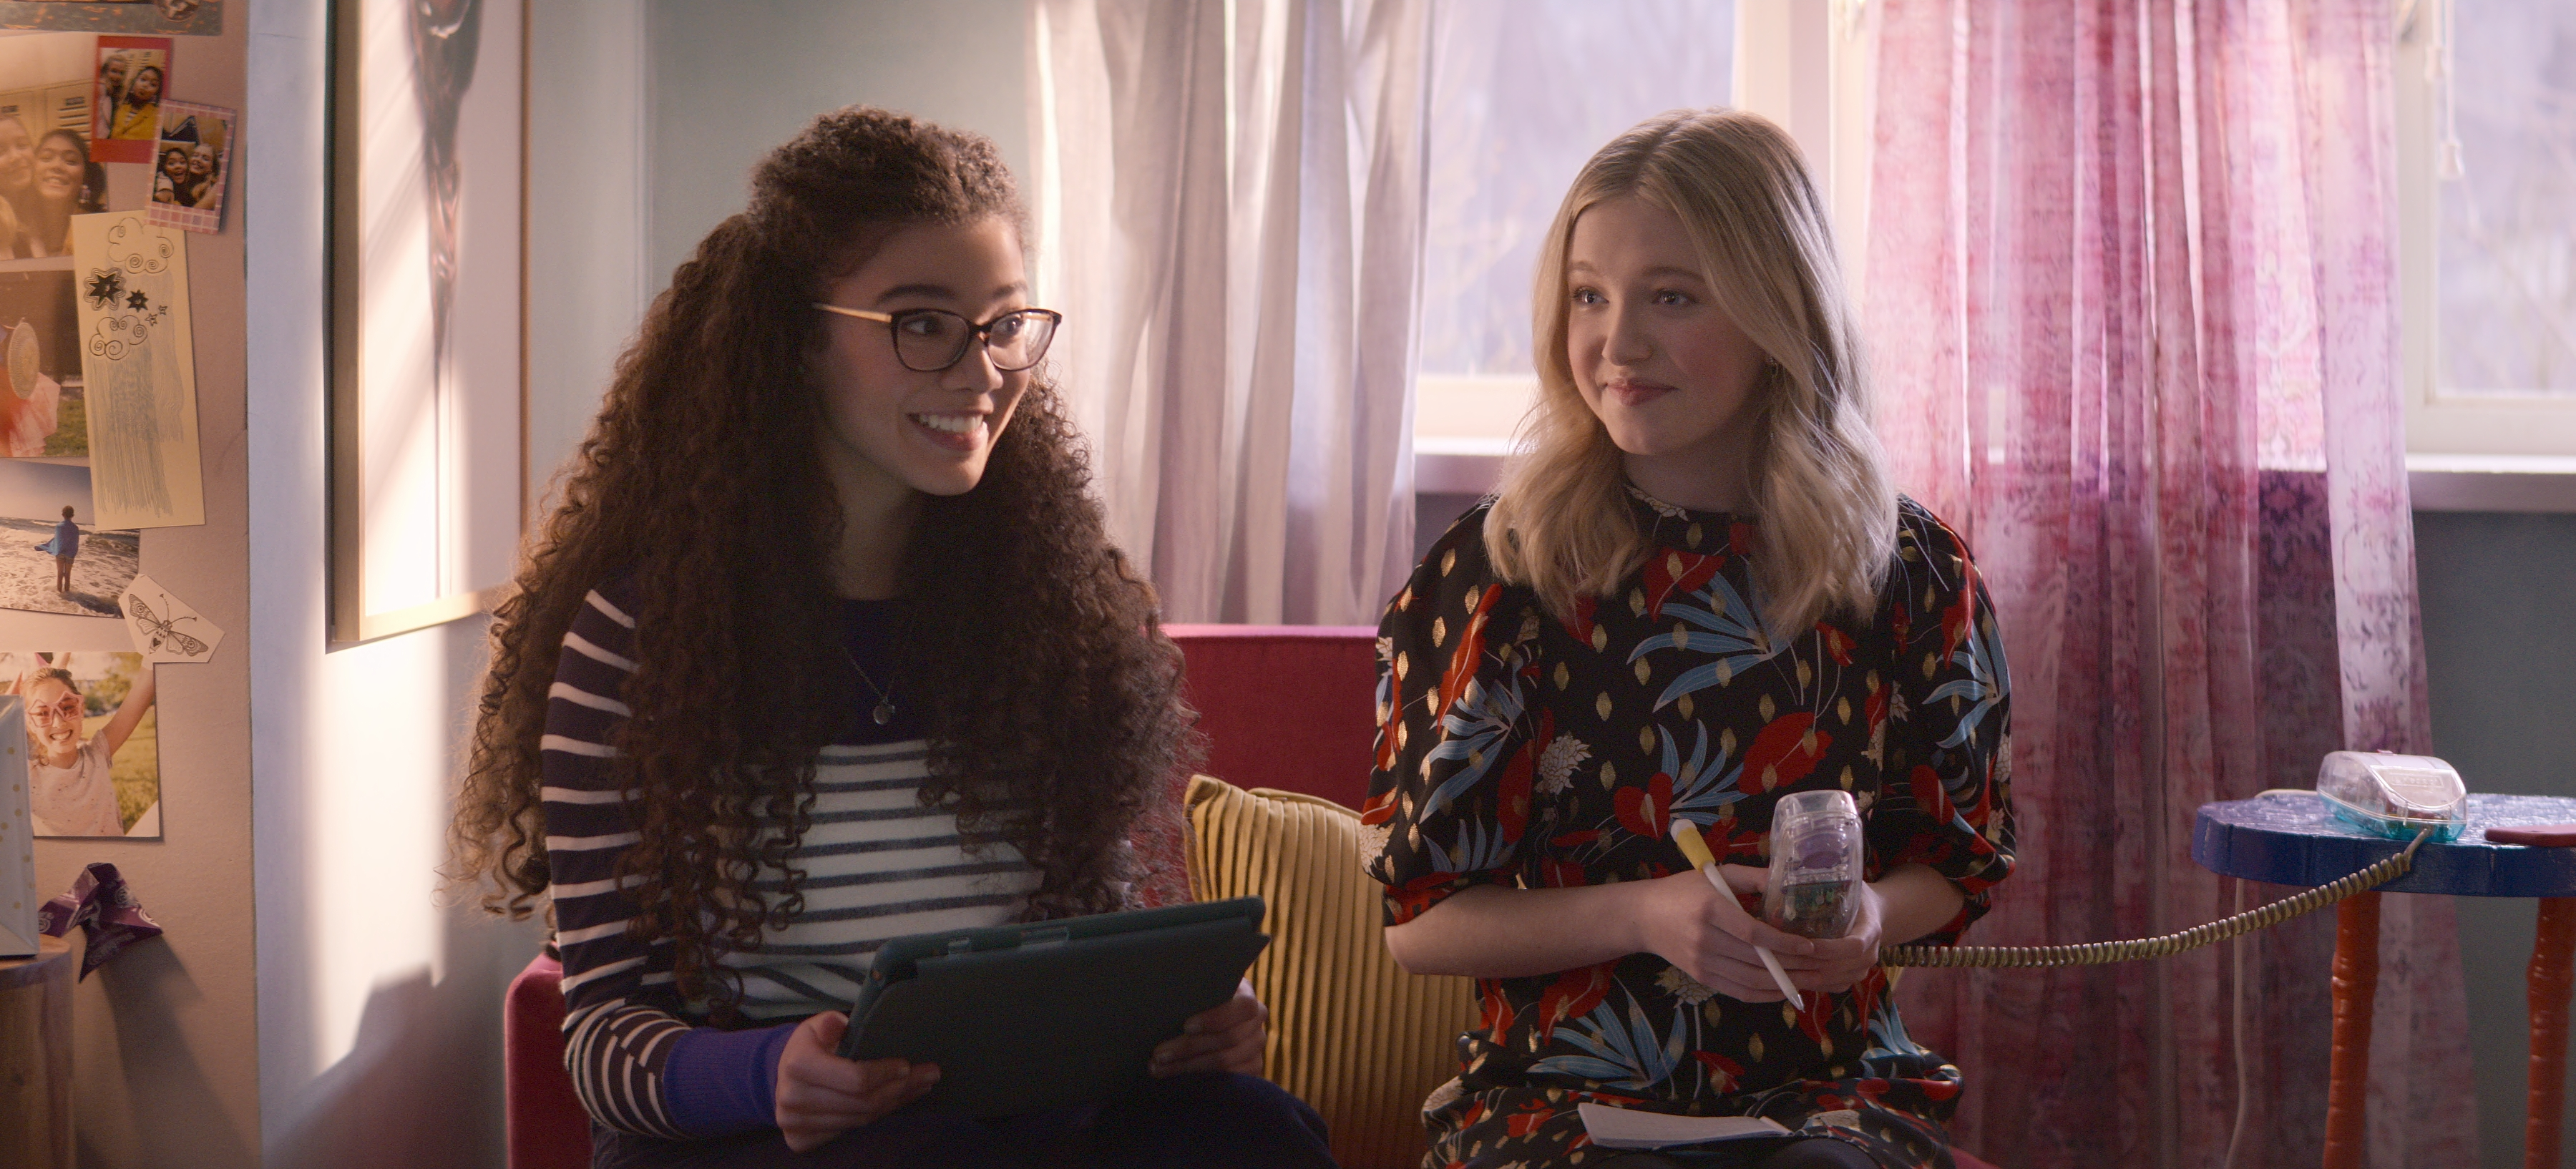 THE BABY-SITTERS CLUB (L to R) MALIA BAKER as MARY ANNE SPIER and SHAY RUDOLPH as STACEY MCGILL in episode 204 of THE BABY-SITTERS CLUB Cr. COURTESY OF NETFLIX © 2021